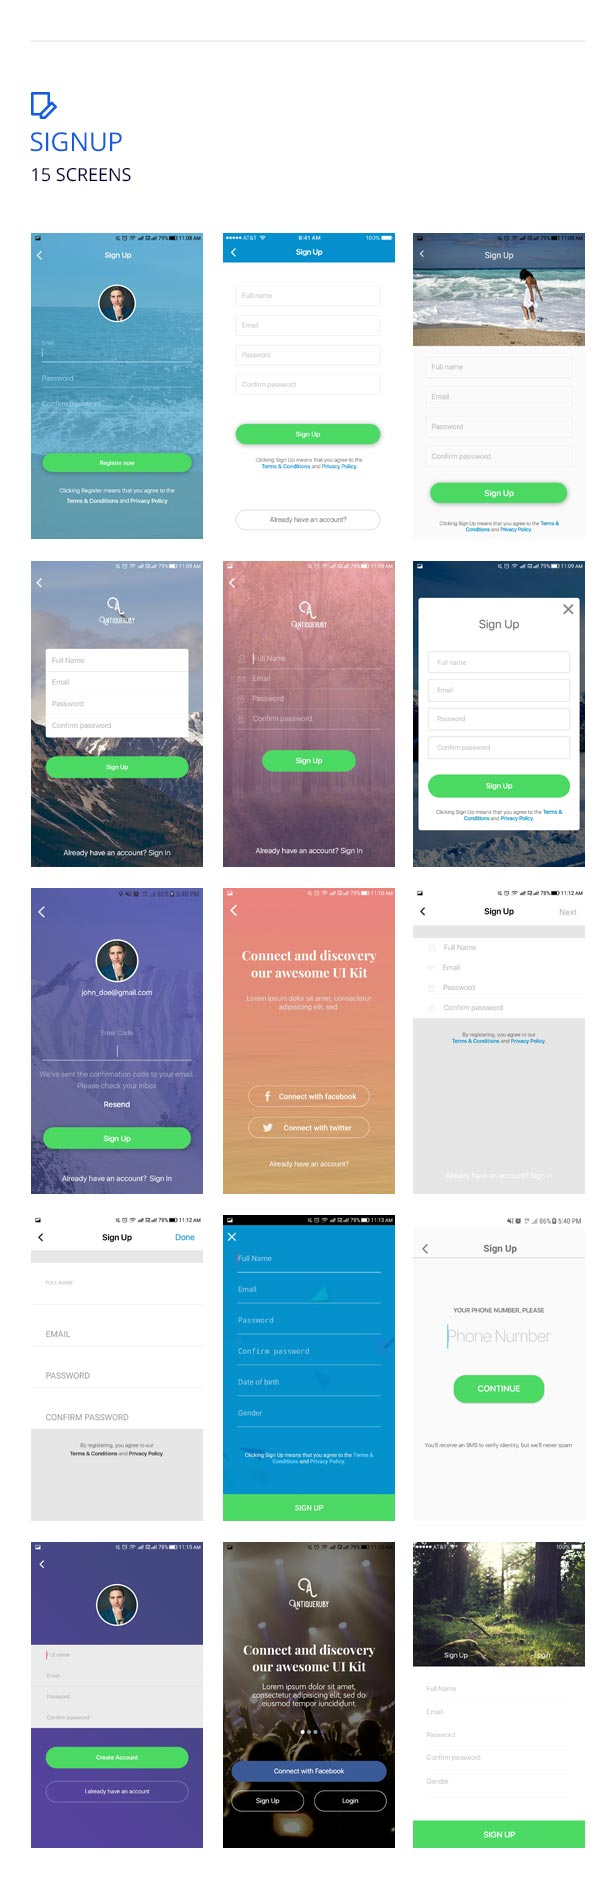 Antiqueruby React Native Material Design UI Components